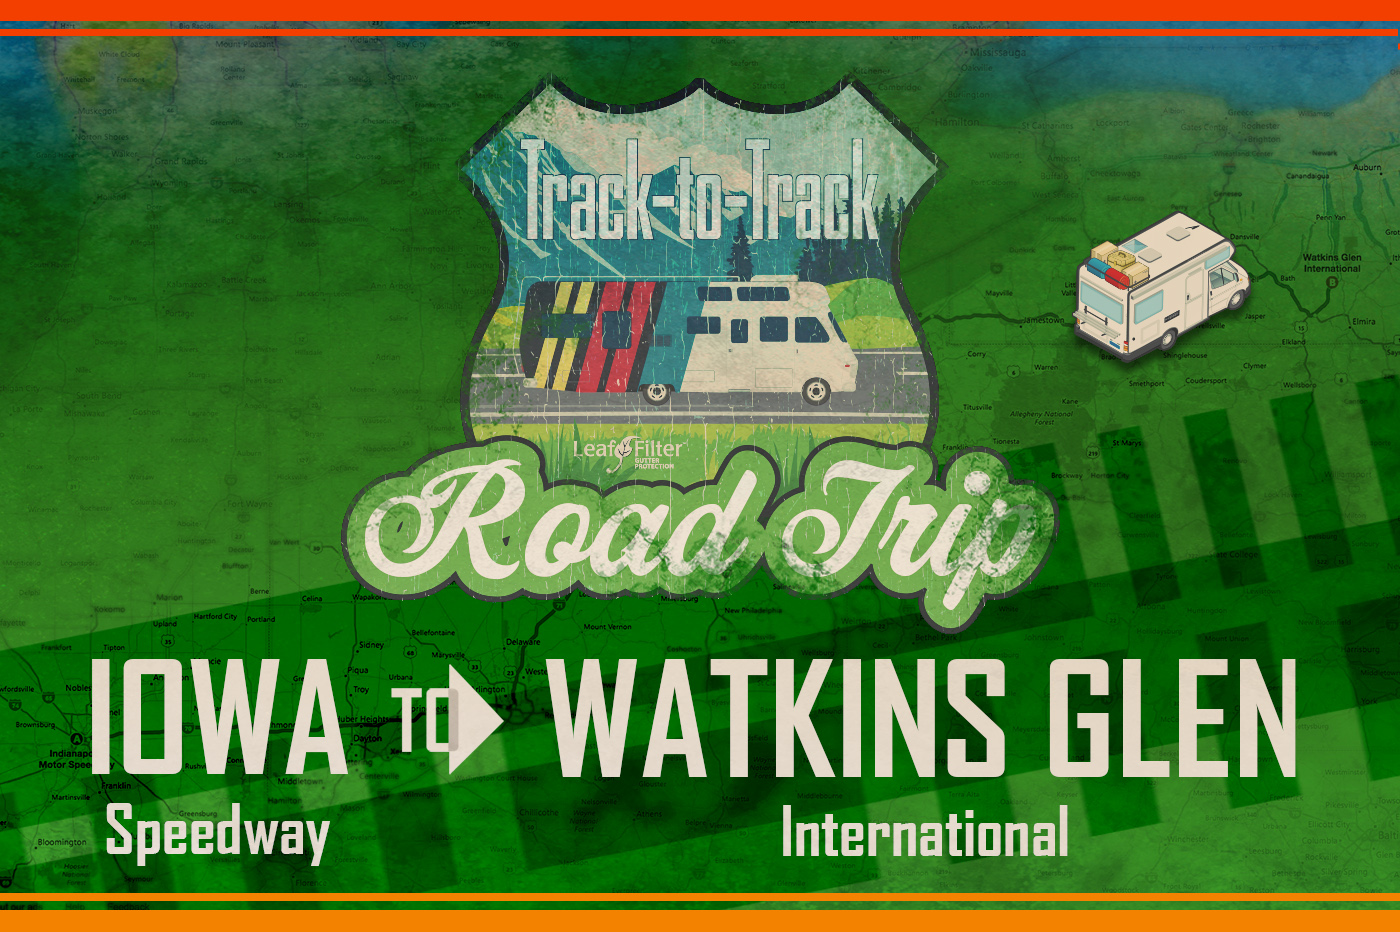 Track-to-Track Road Trip Part 6: Iowa Speedway to Watkins Glen International